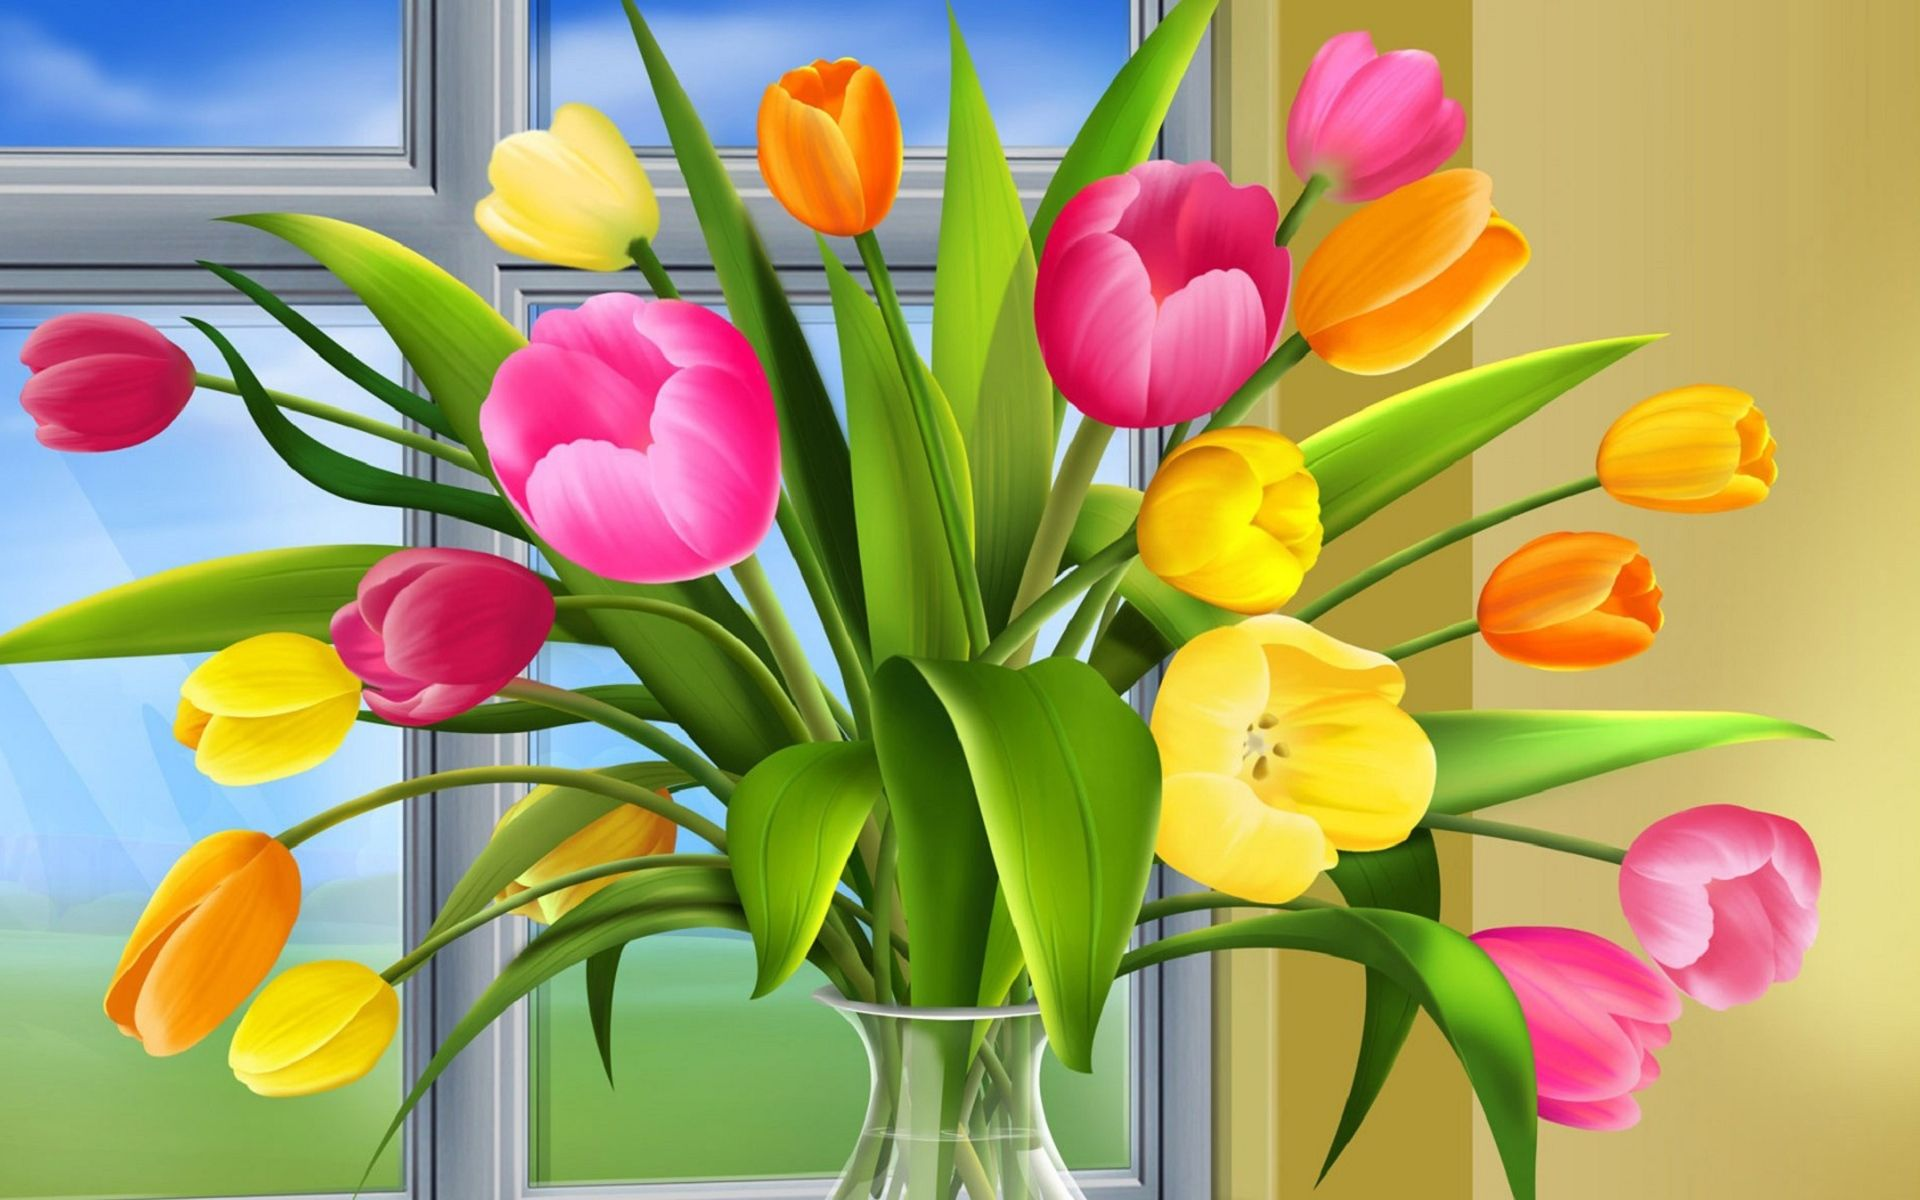 D flowers wallpapers hd widescreen for pc dekstop places to visit